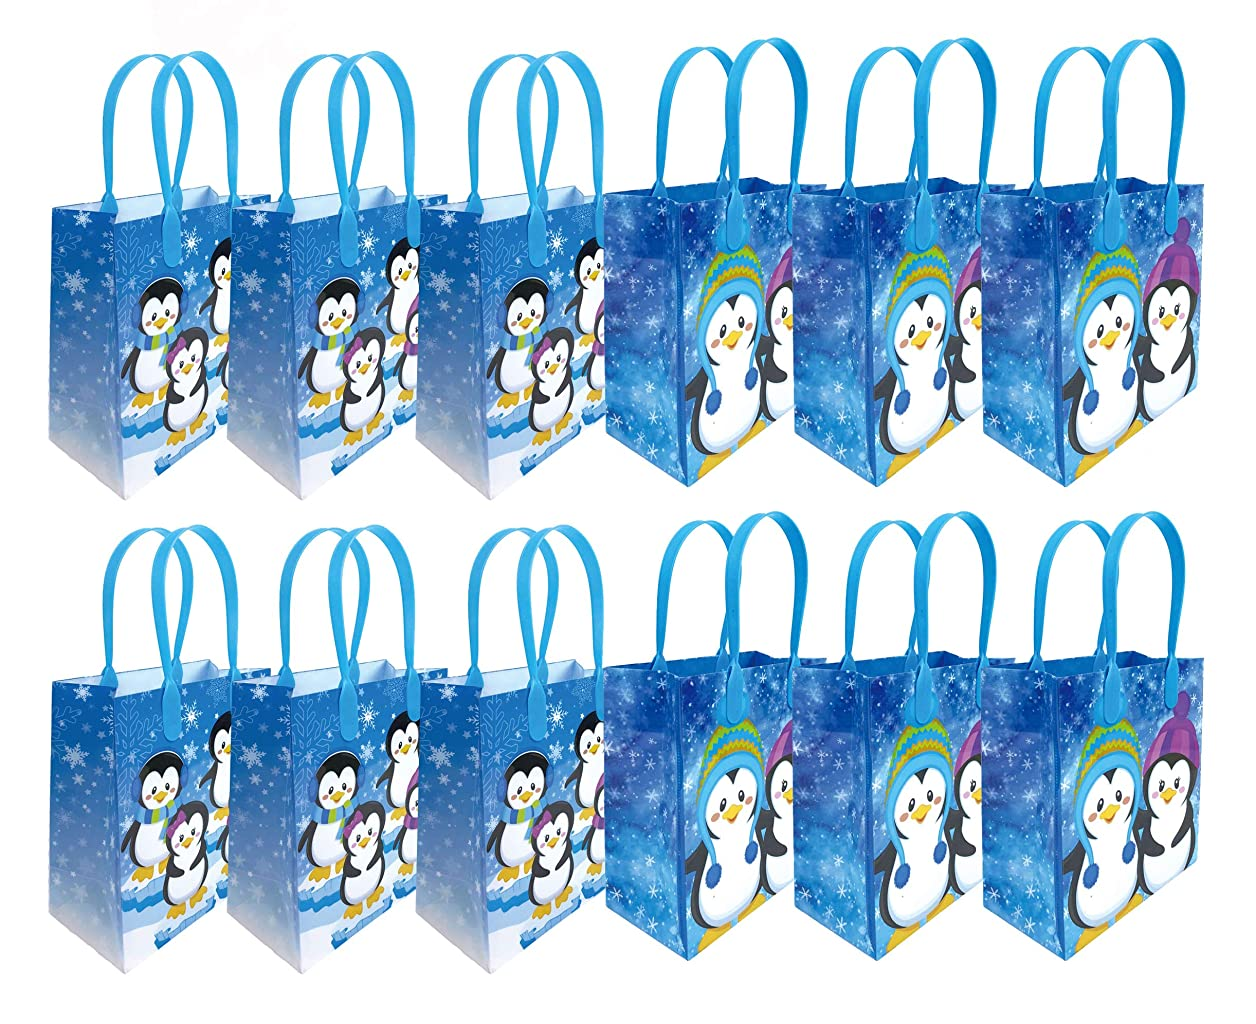 Penguin Winter Themed Party Favor Bags Treat Bags, 12 Pack wsynimjdwbzpbiky